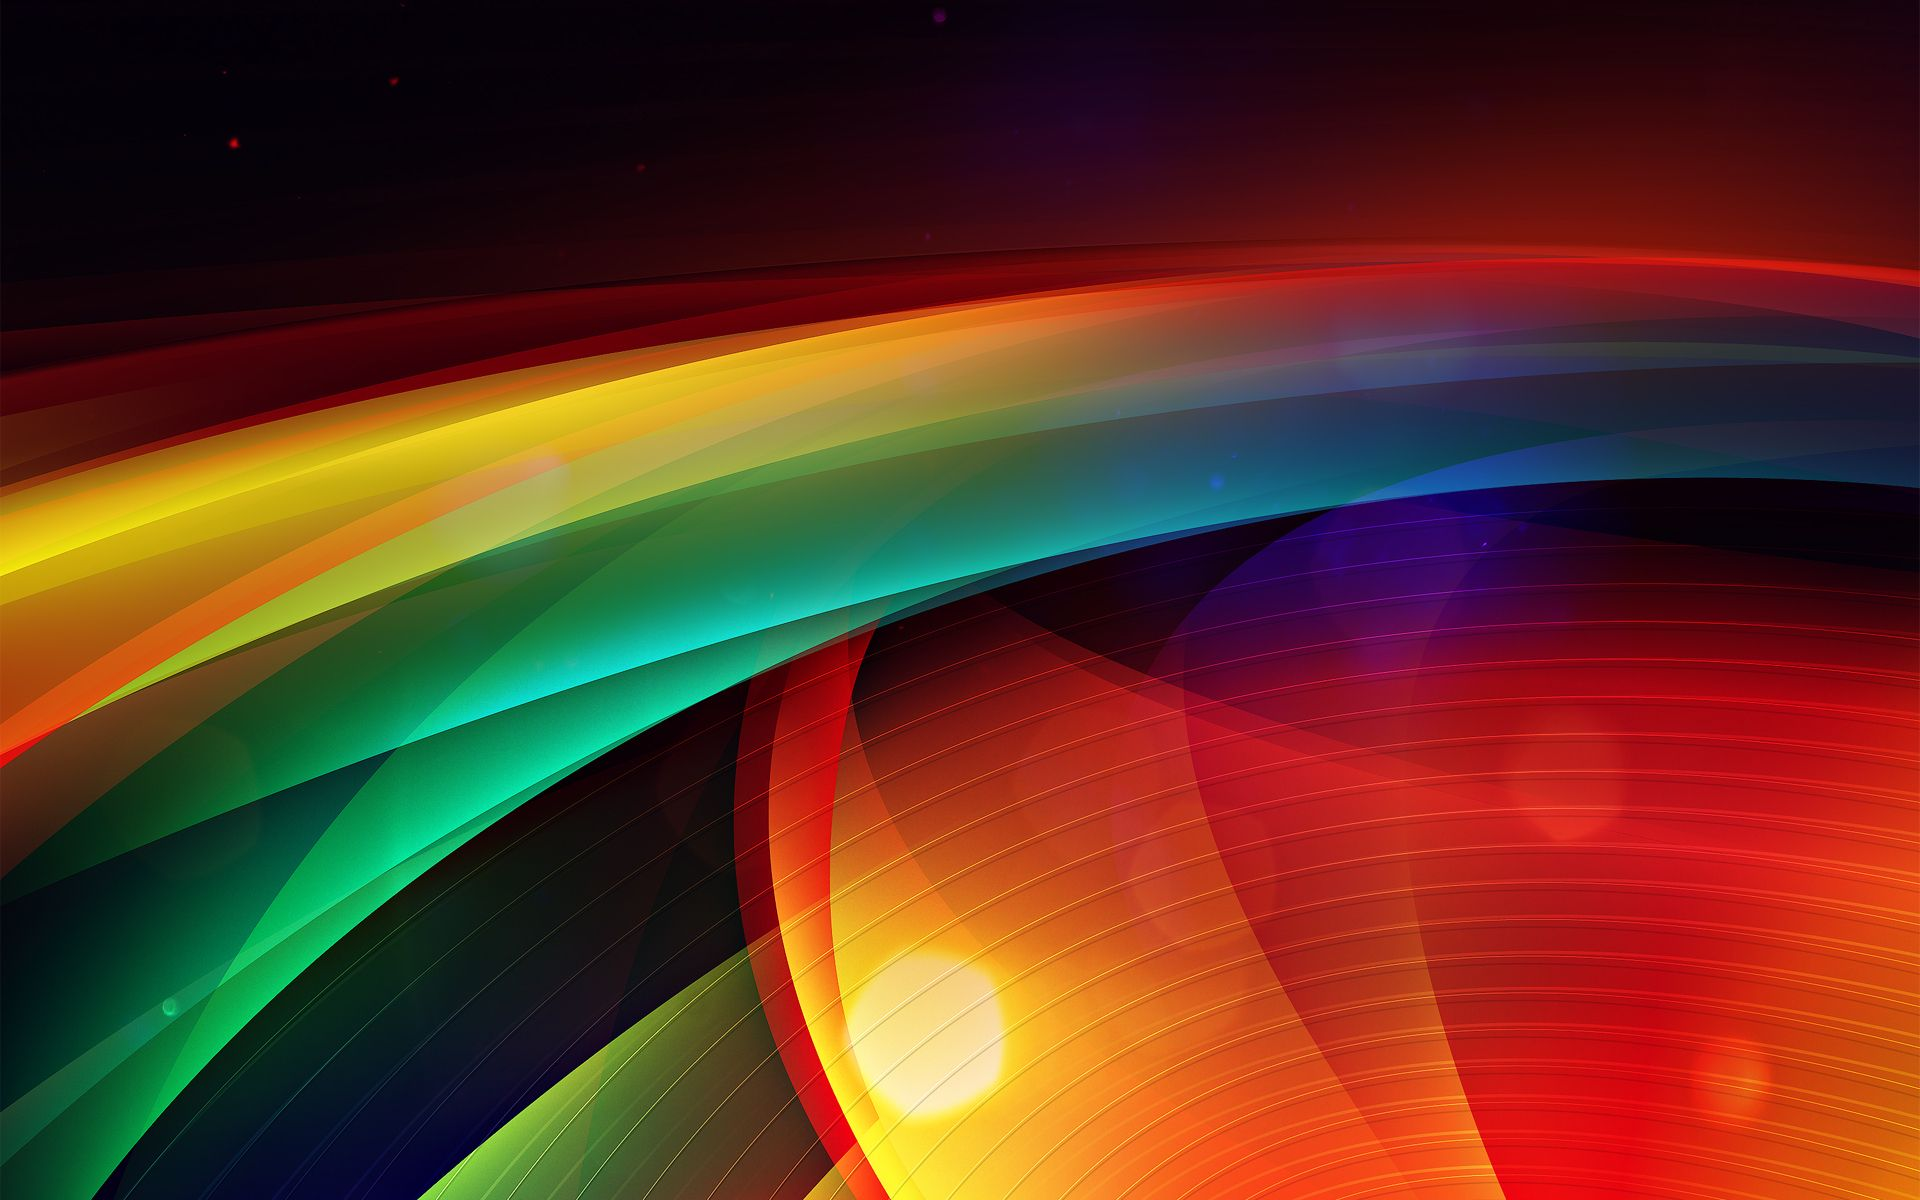 Pin By Napox On Rainbow Multi Color Background Hd Wallpaper Abstract Wallpaper Abstract